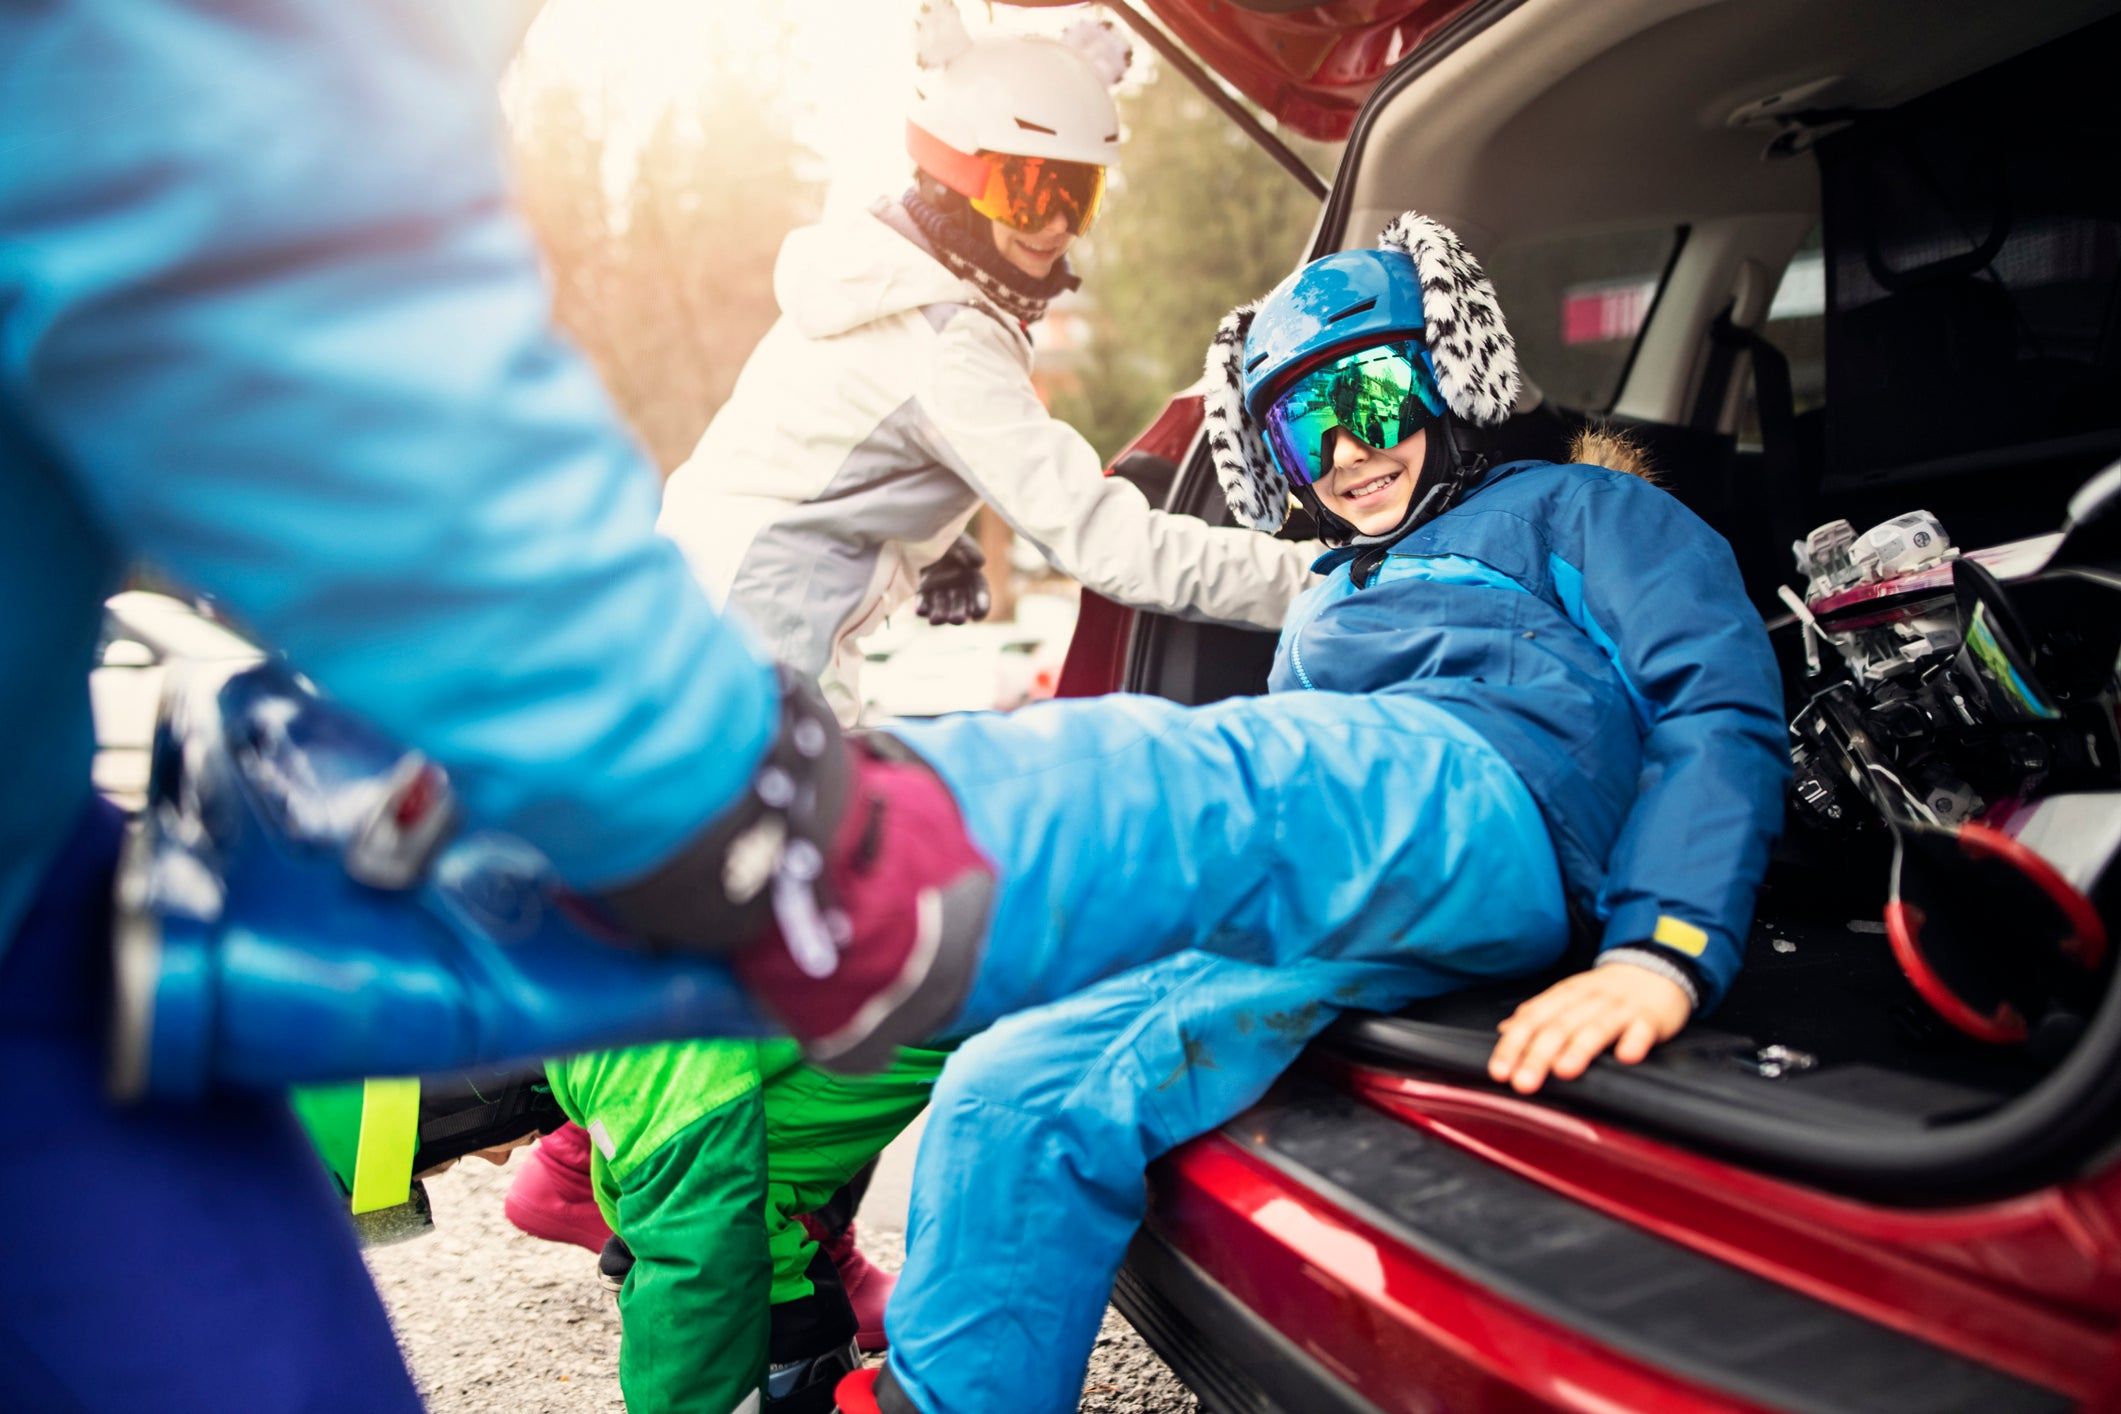 Everything you need to know about packing for a ski trip